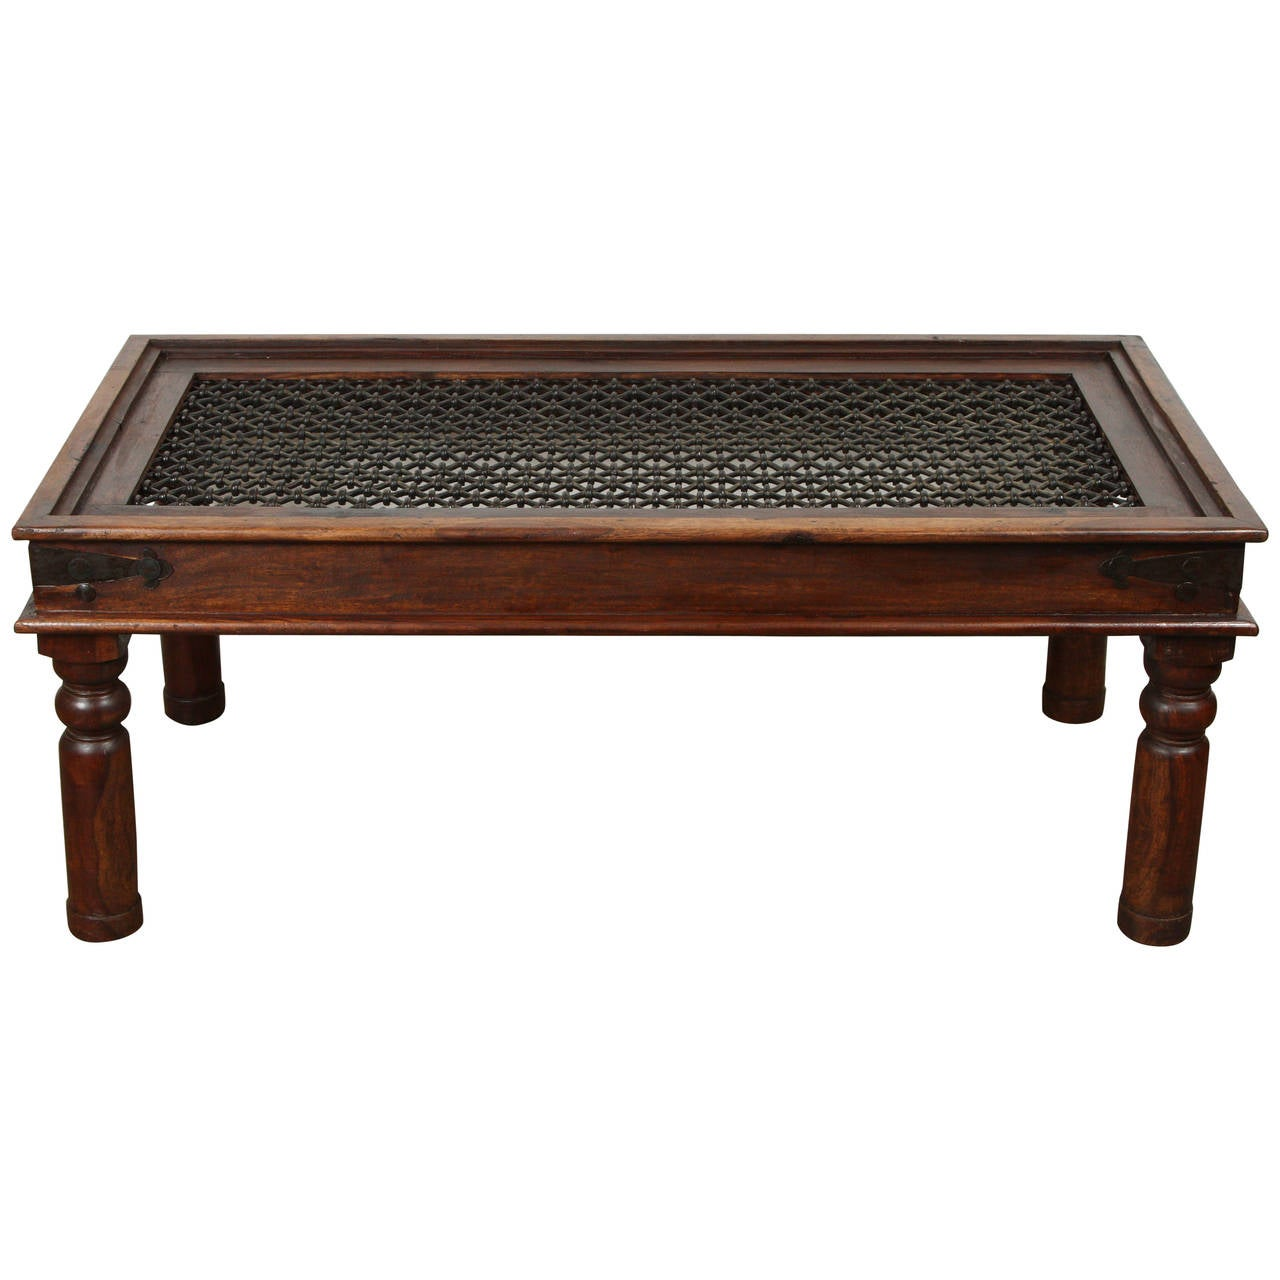 Spanish Style Coffee Table With Iron At 1stdibs